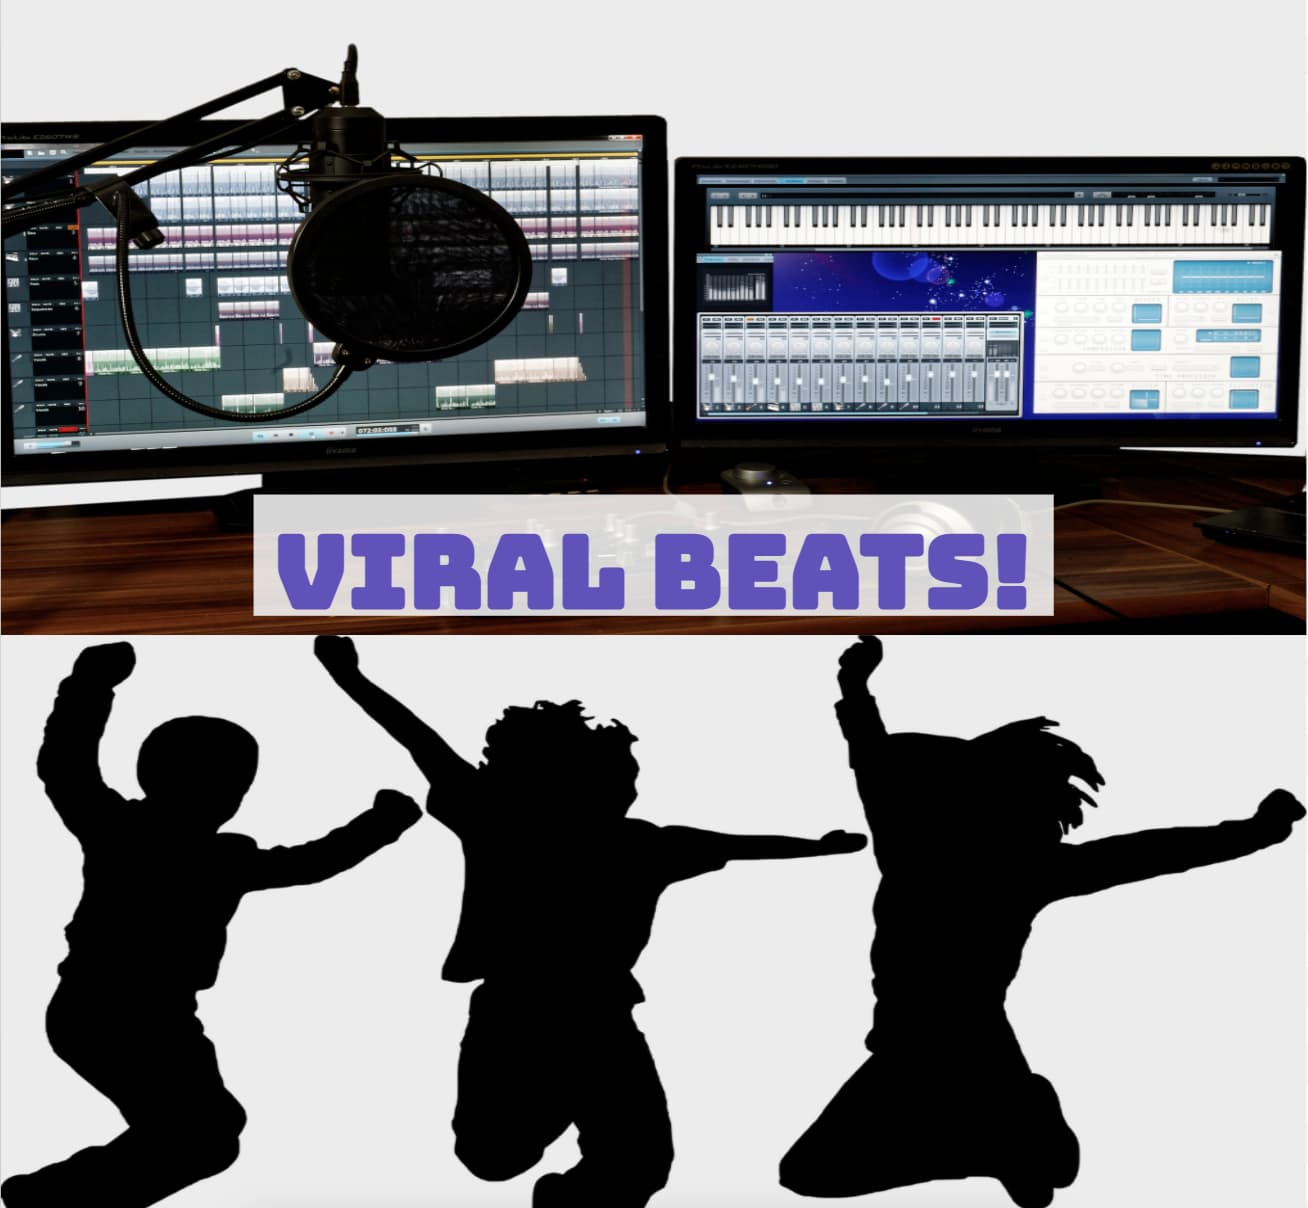 Mix your own music, choreograph a unique dance to match, and become the next viral sensation!